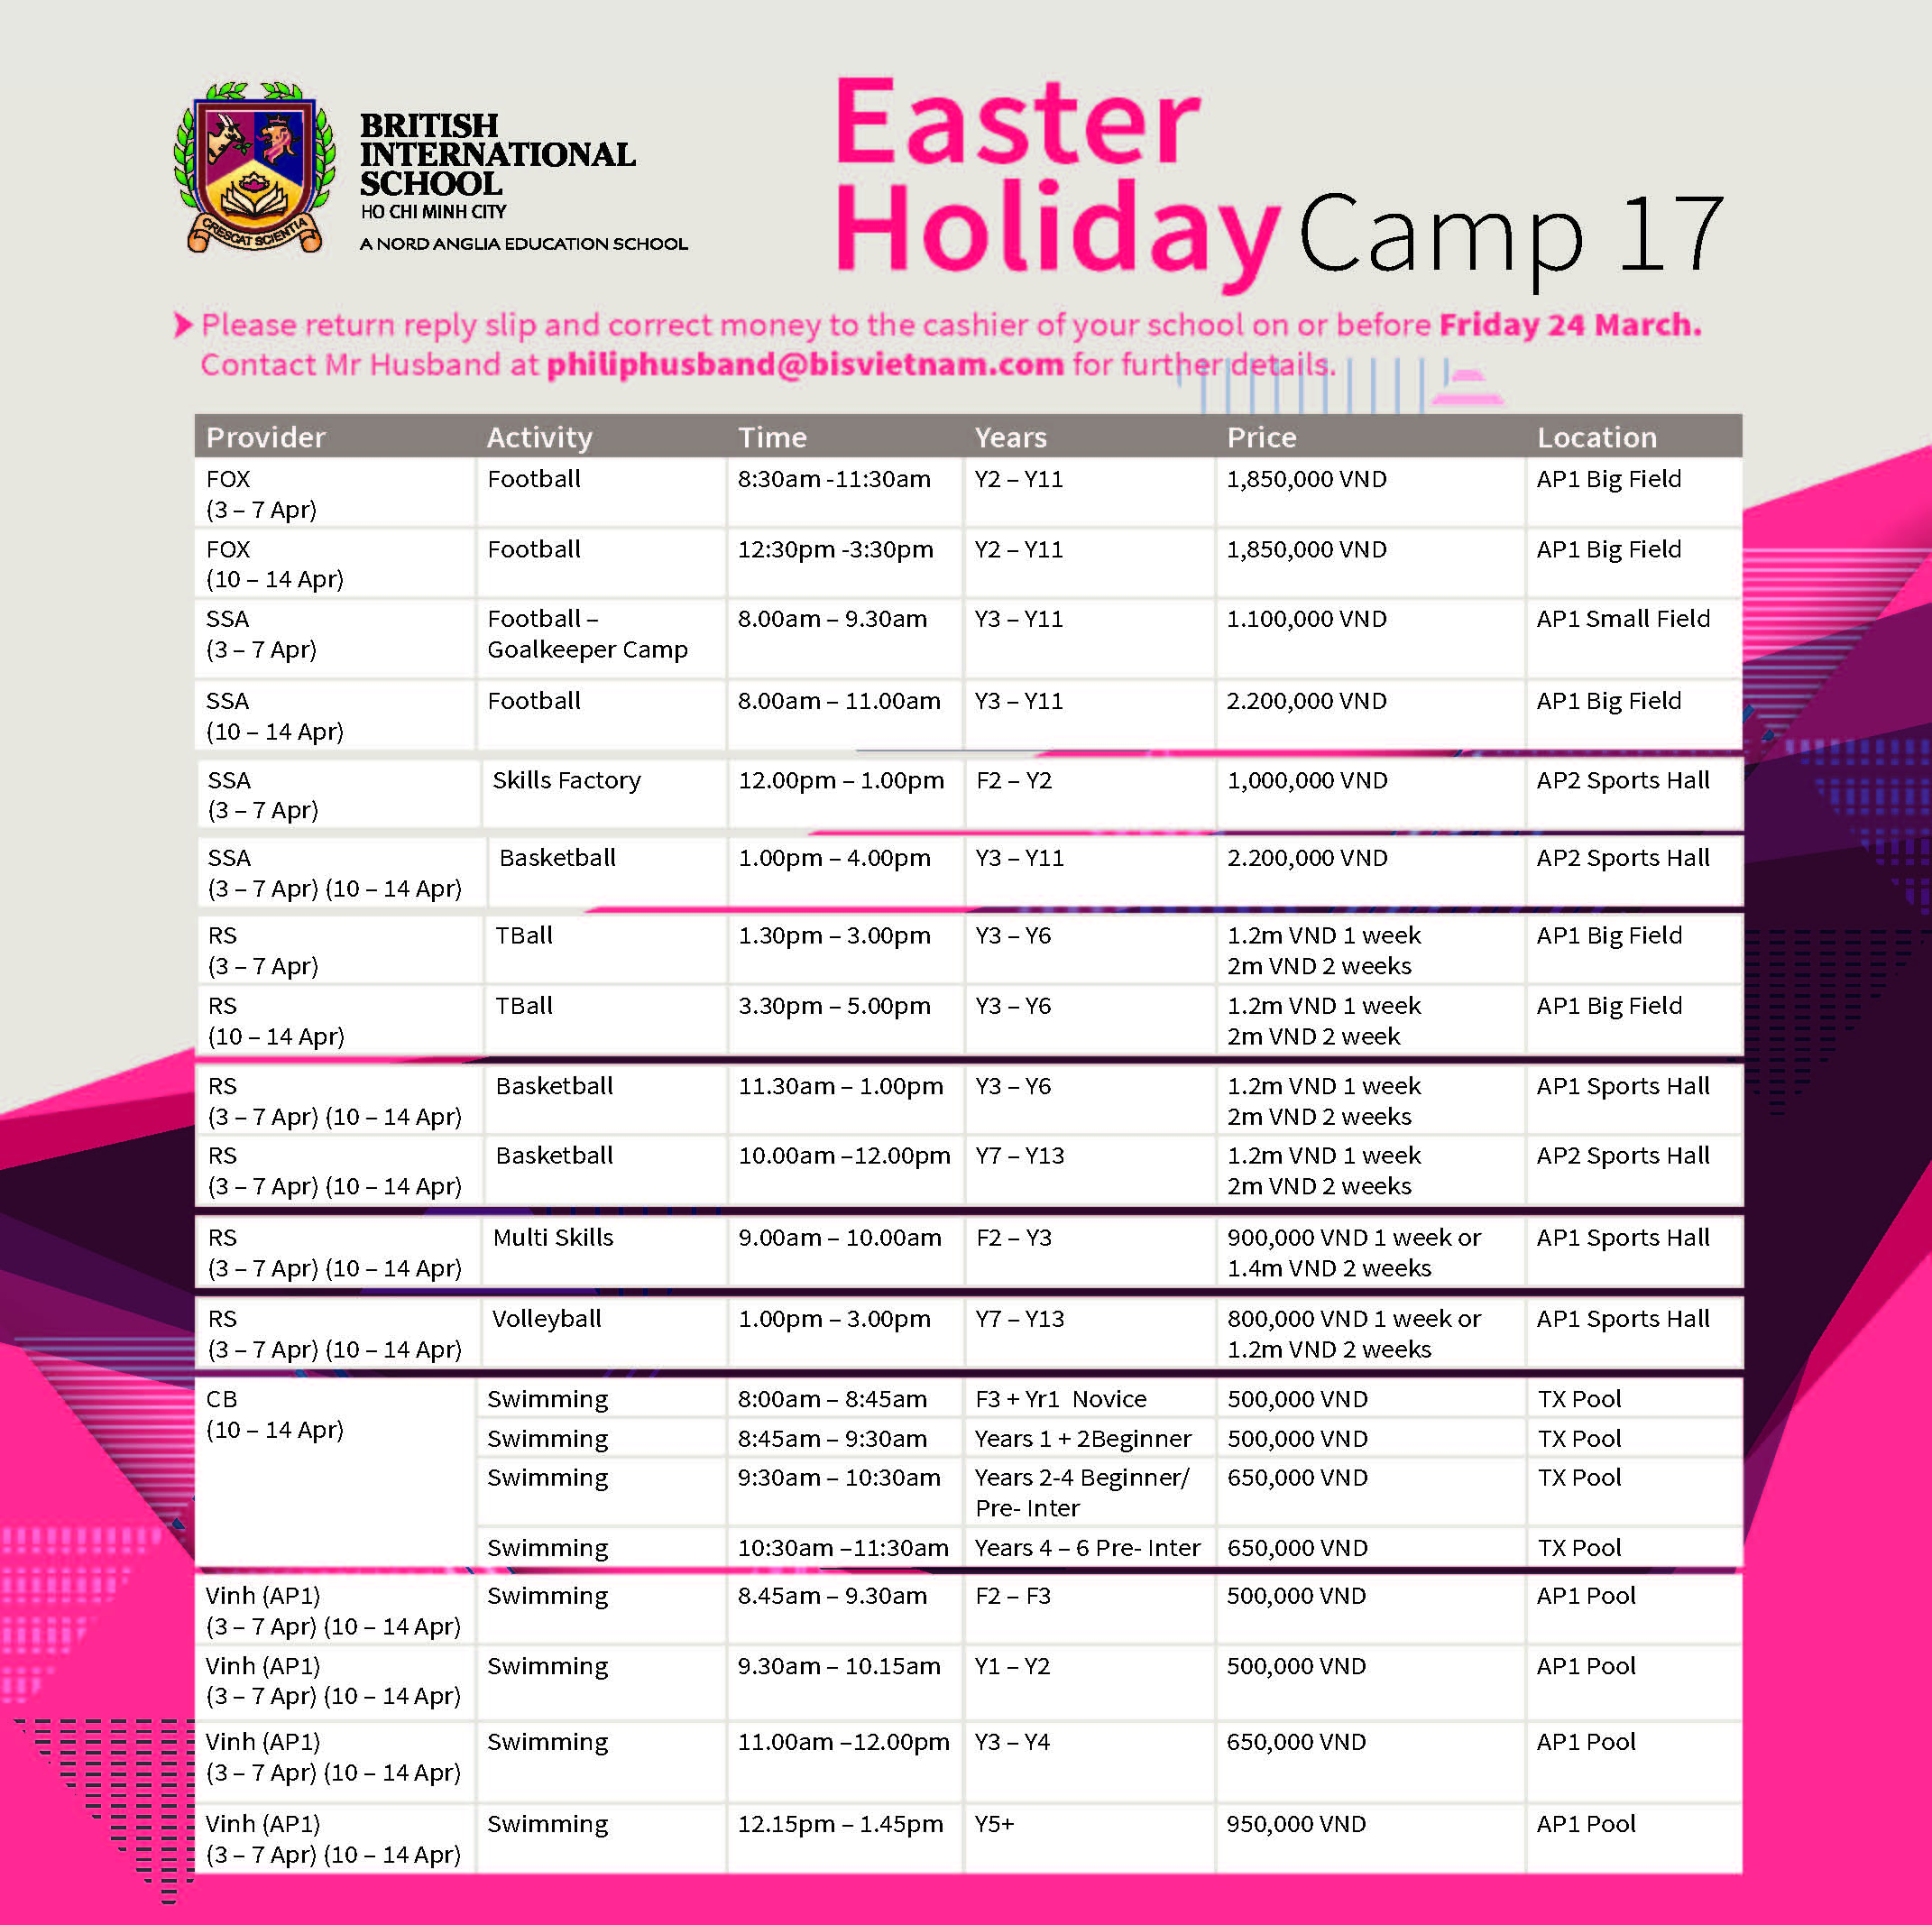 Easter Holiday Camp 16_AP1